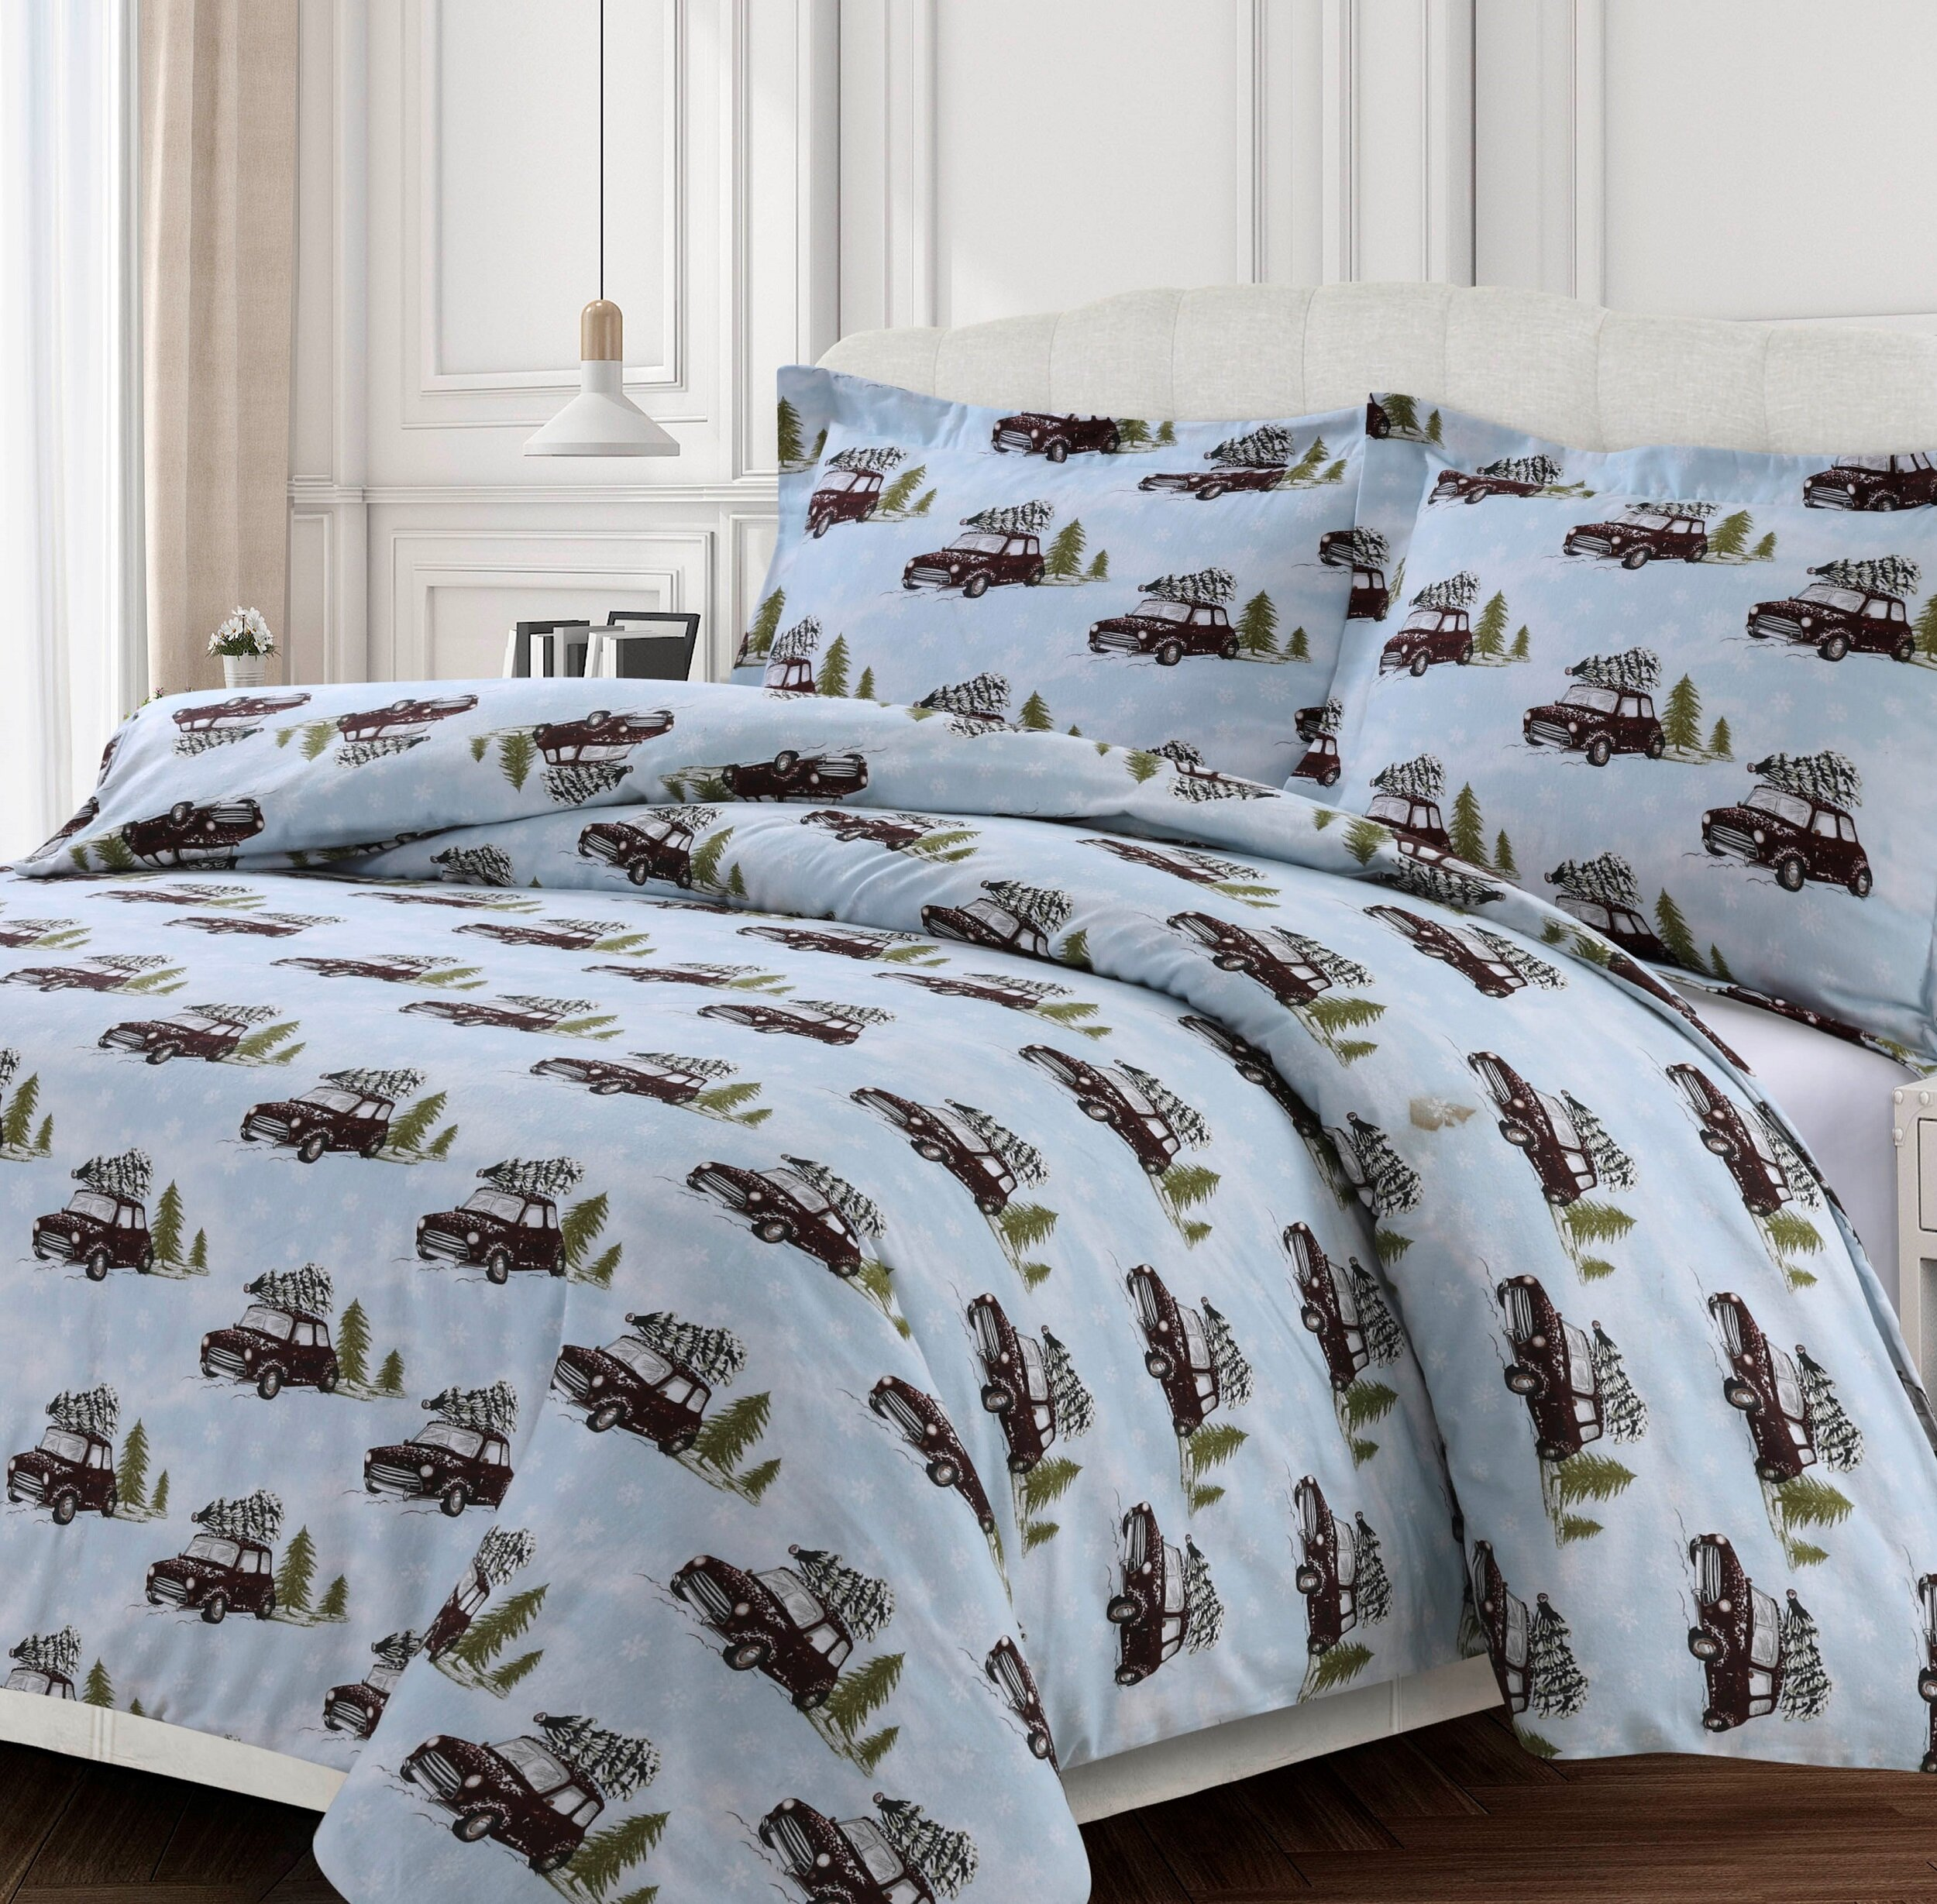 The Holiday Aisle Flint Oversized Duvet Cover Set Wayfair